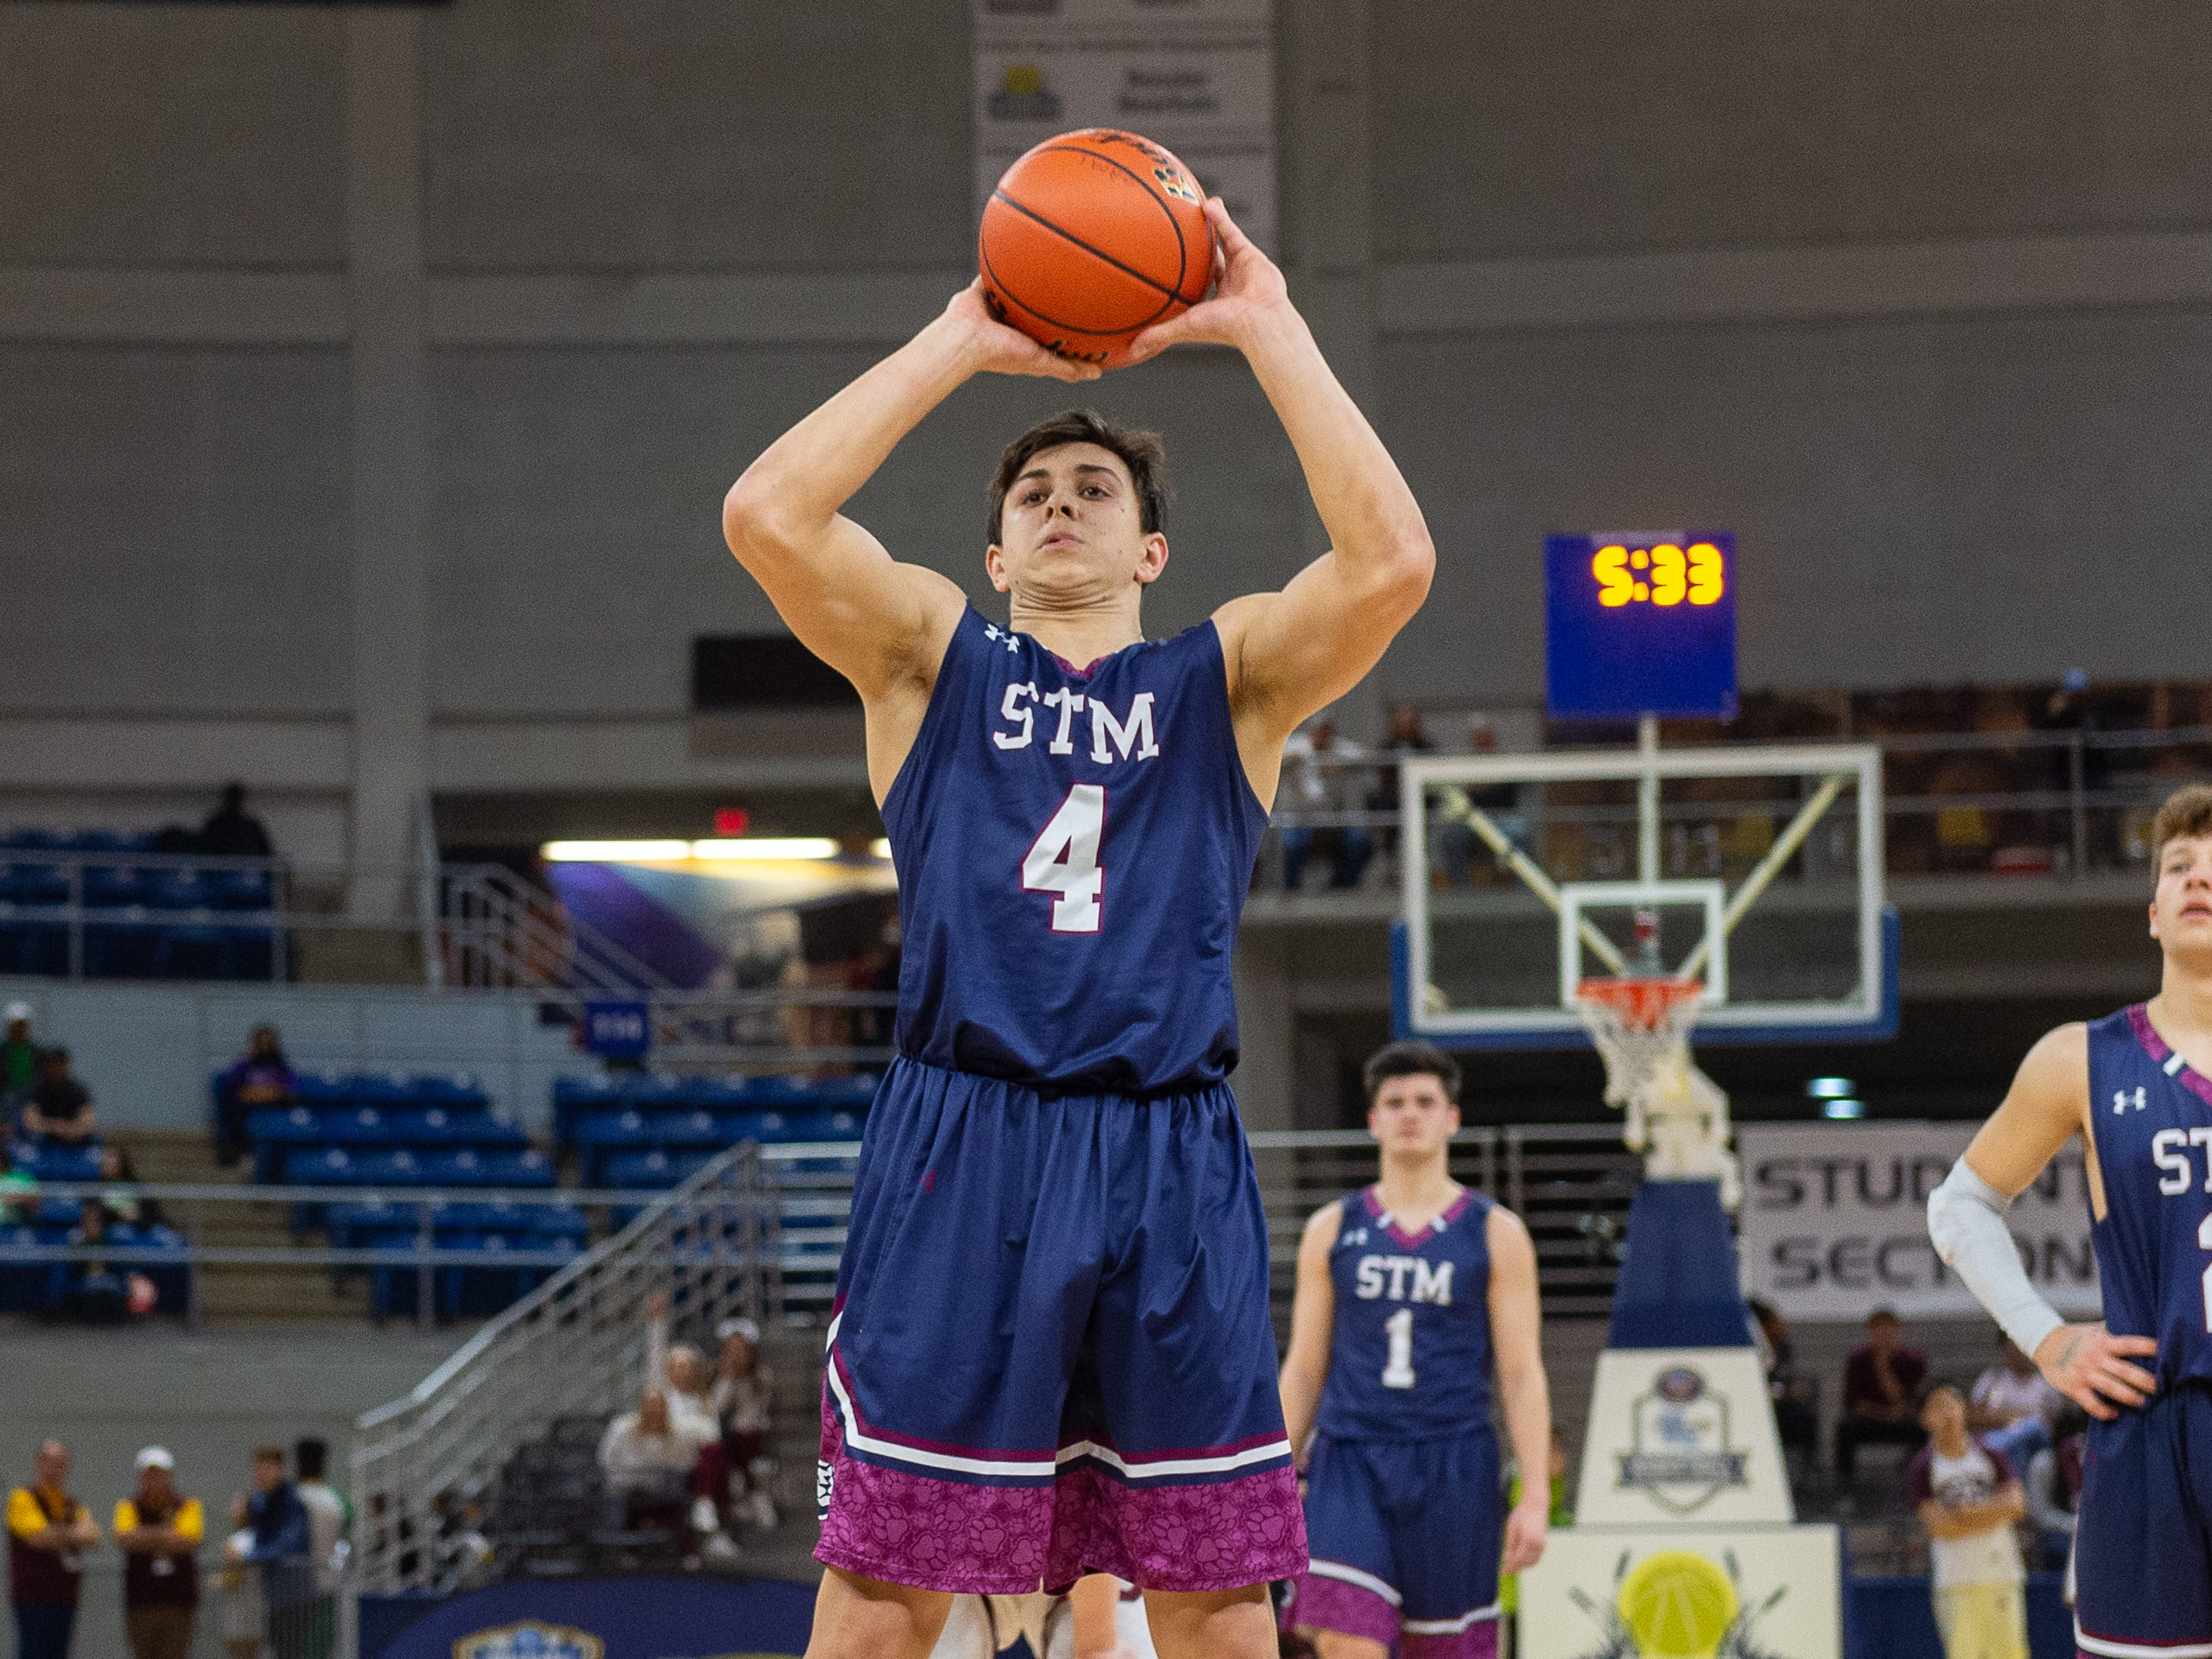 Jack Bech at the free throw line as The STM Cougars beat DeLaSalle in double overtime to win the Allstate Sugar Bowl/LHSAA Boys' Marsh Madness Div II State Championship. Saturday, March 9, 2019.